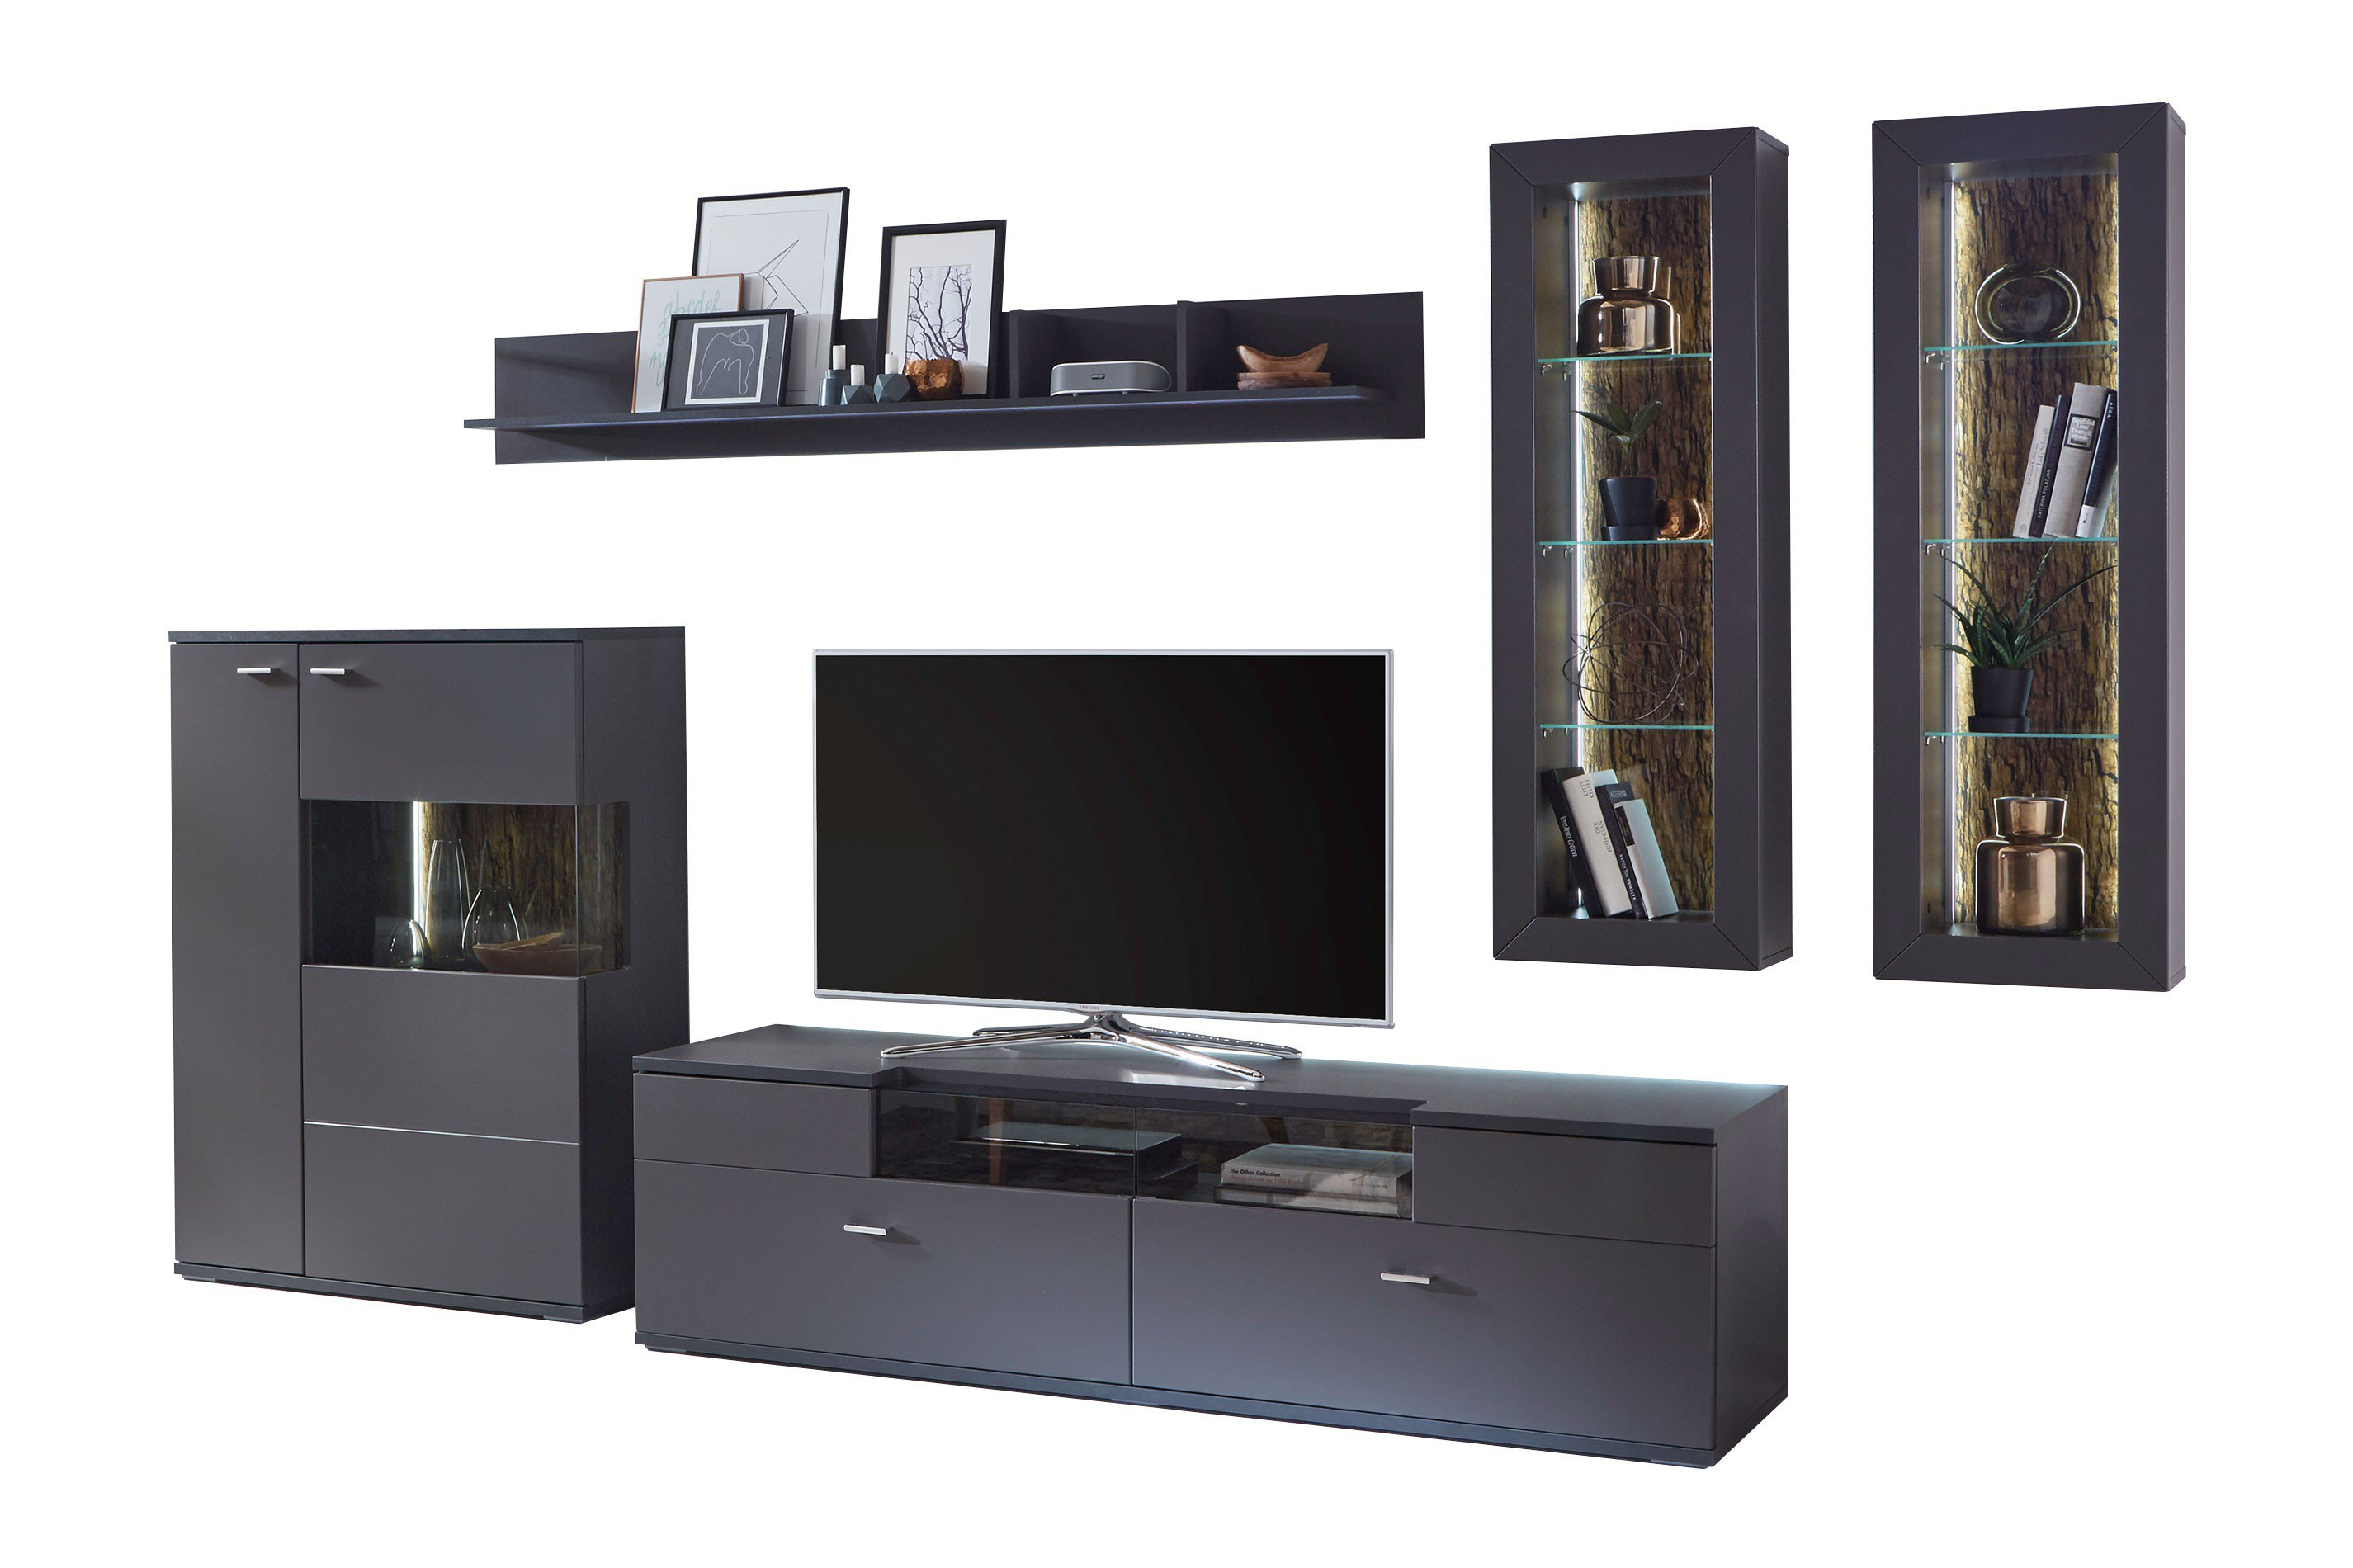 ideal m bel wohnwand kattia 10 graphit m bel letz ihr online shop. Black Bedroom Furniture Sets. Home Design Ideas